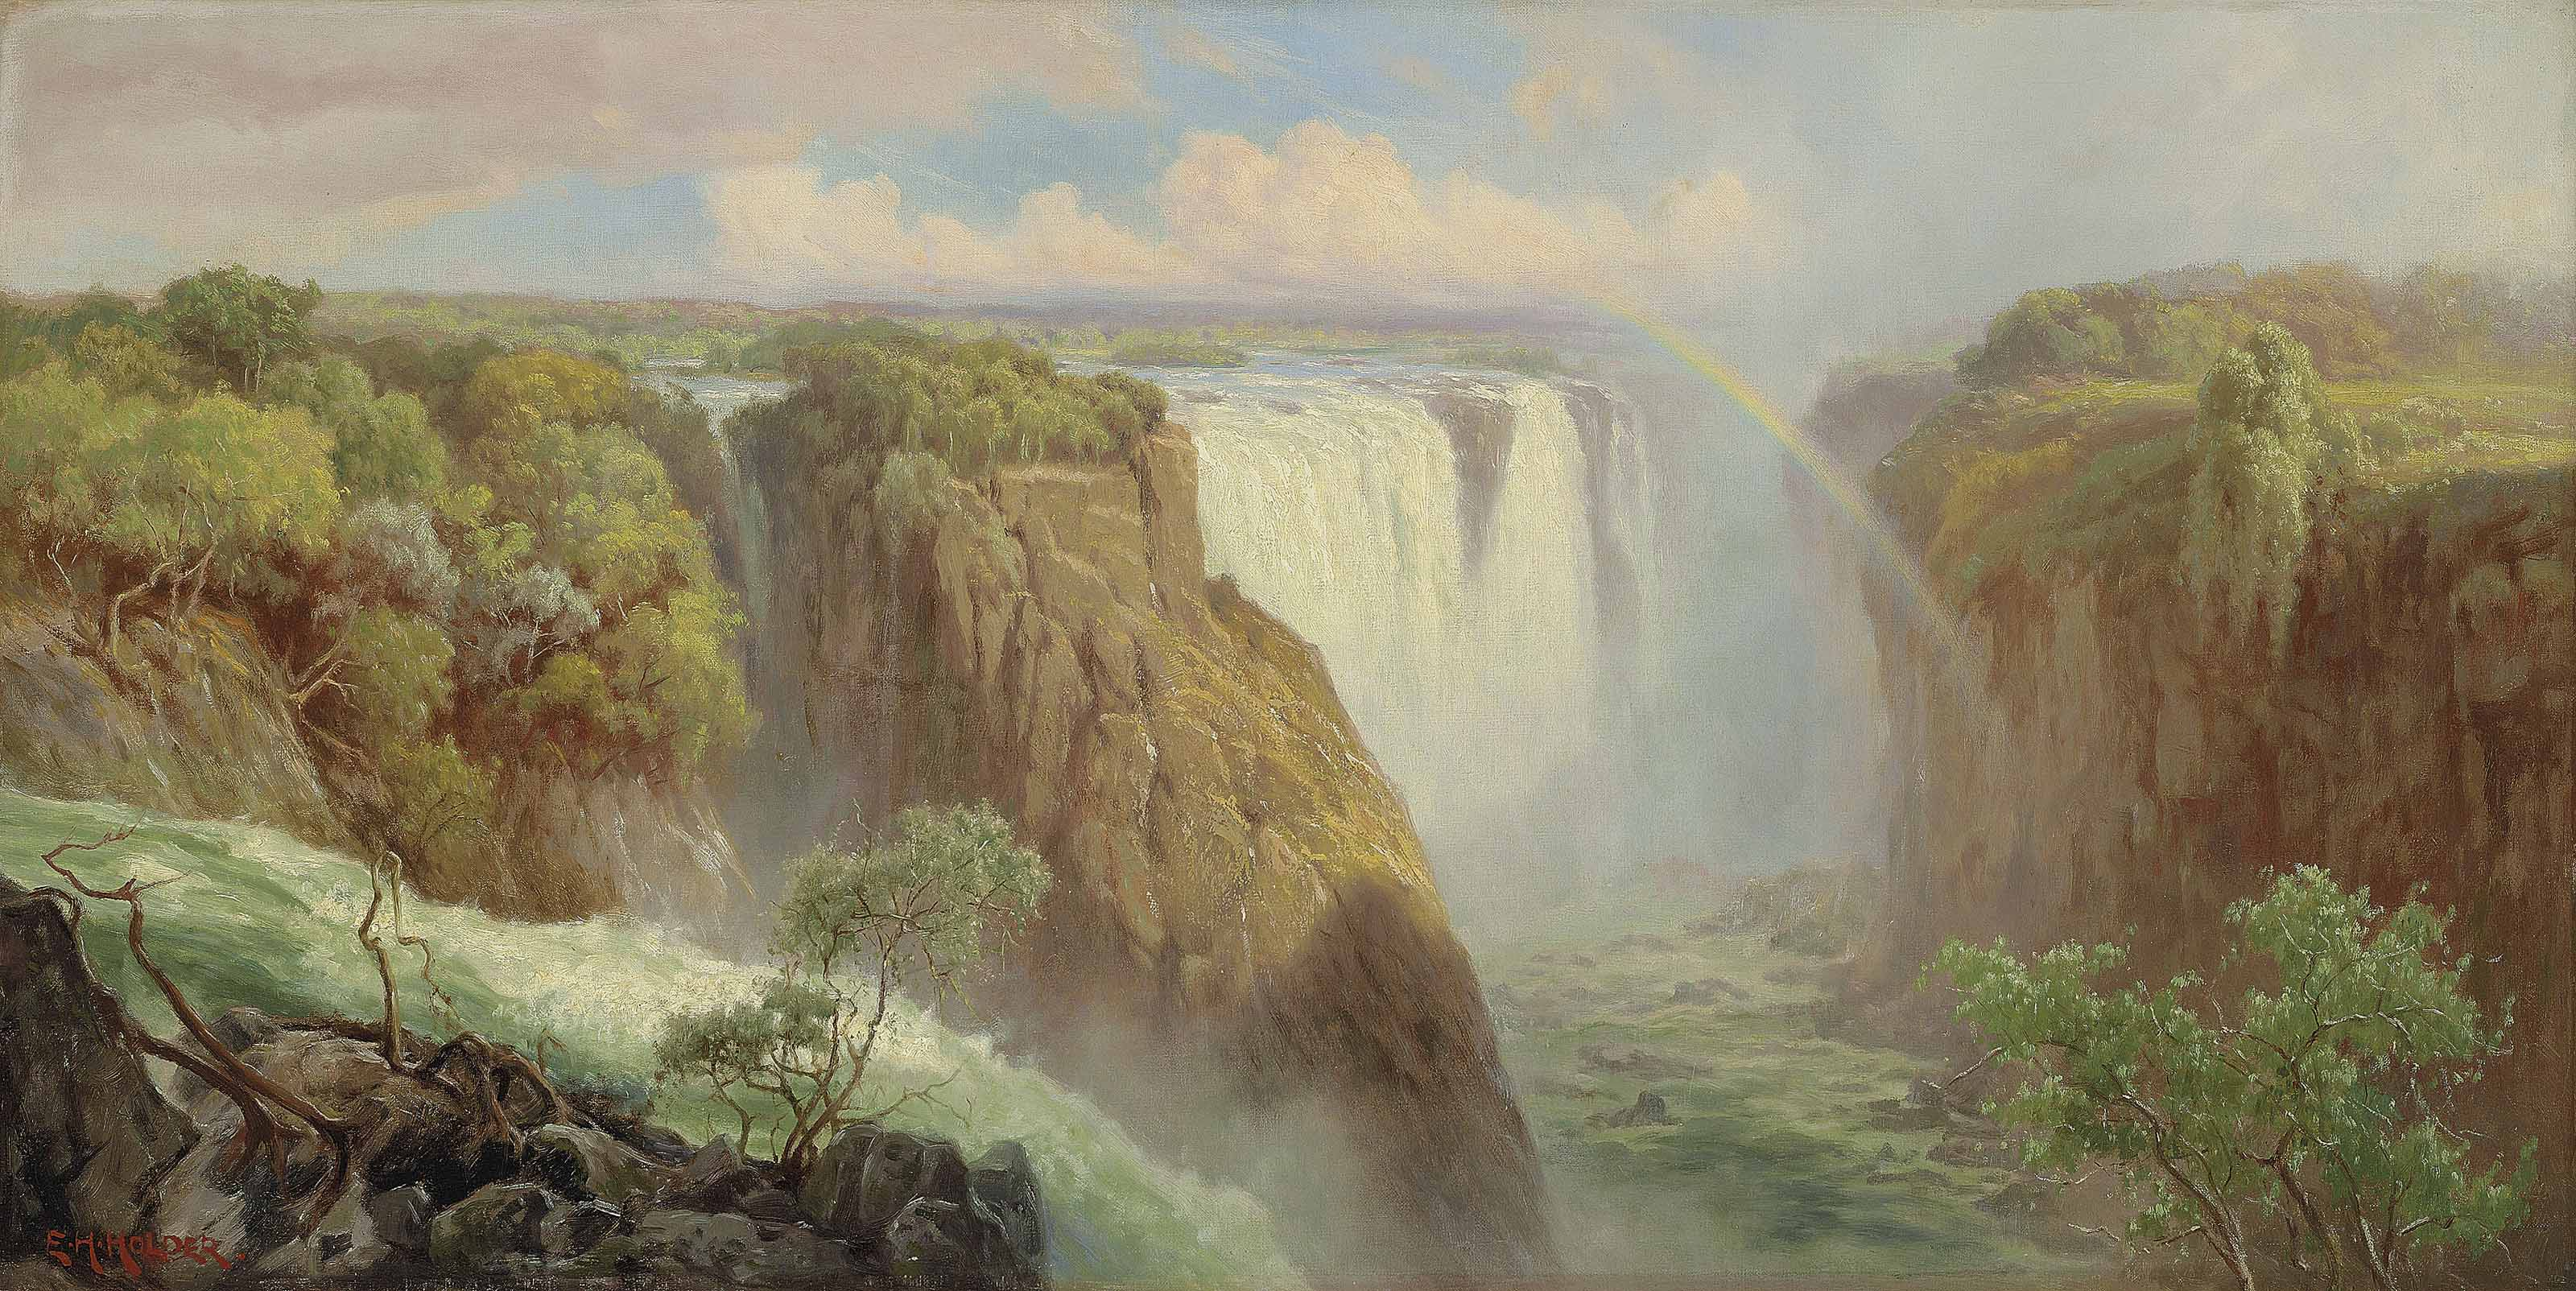 The Devil's Cataract and Victoria Falls, from the west bank of the Zambezi River